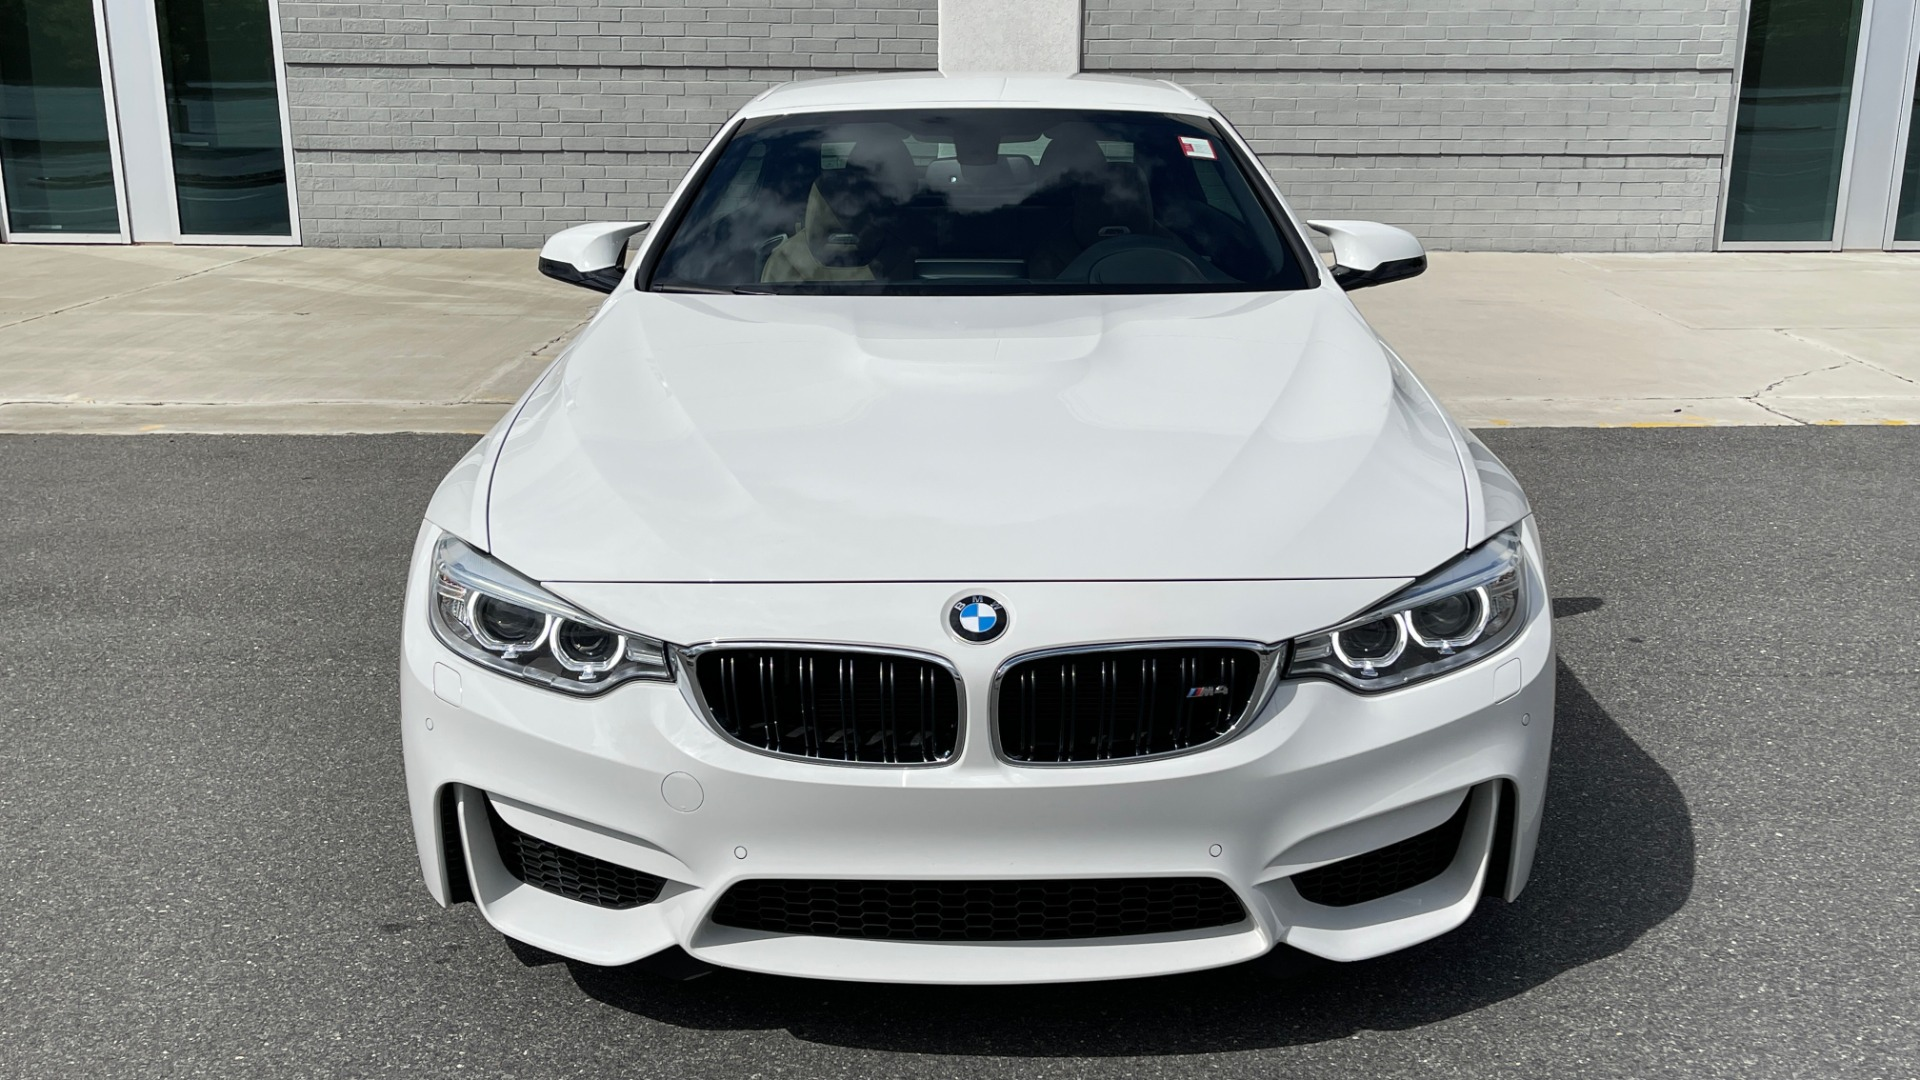 Used 2016 BMW M4 CONVERTIBLE 3.0L / 7-SPD AUTO / EXECUTIVE / ADAPT M SUSP / REARVIEW for sale $53,999 at Formula Imports in Charlotte NC 28227 24